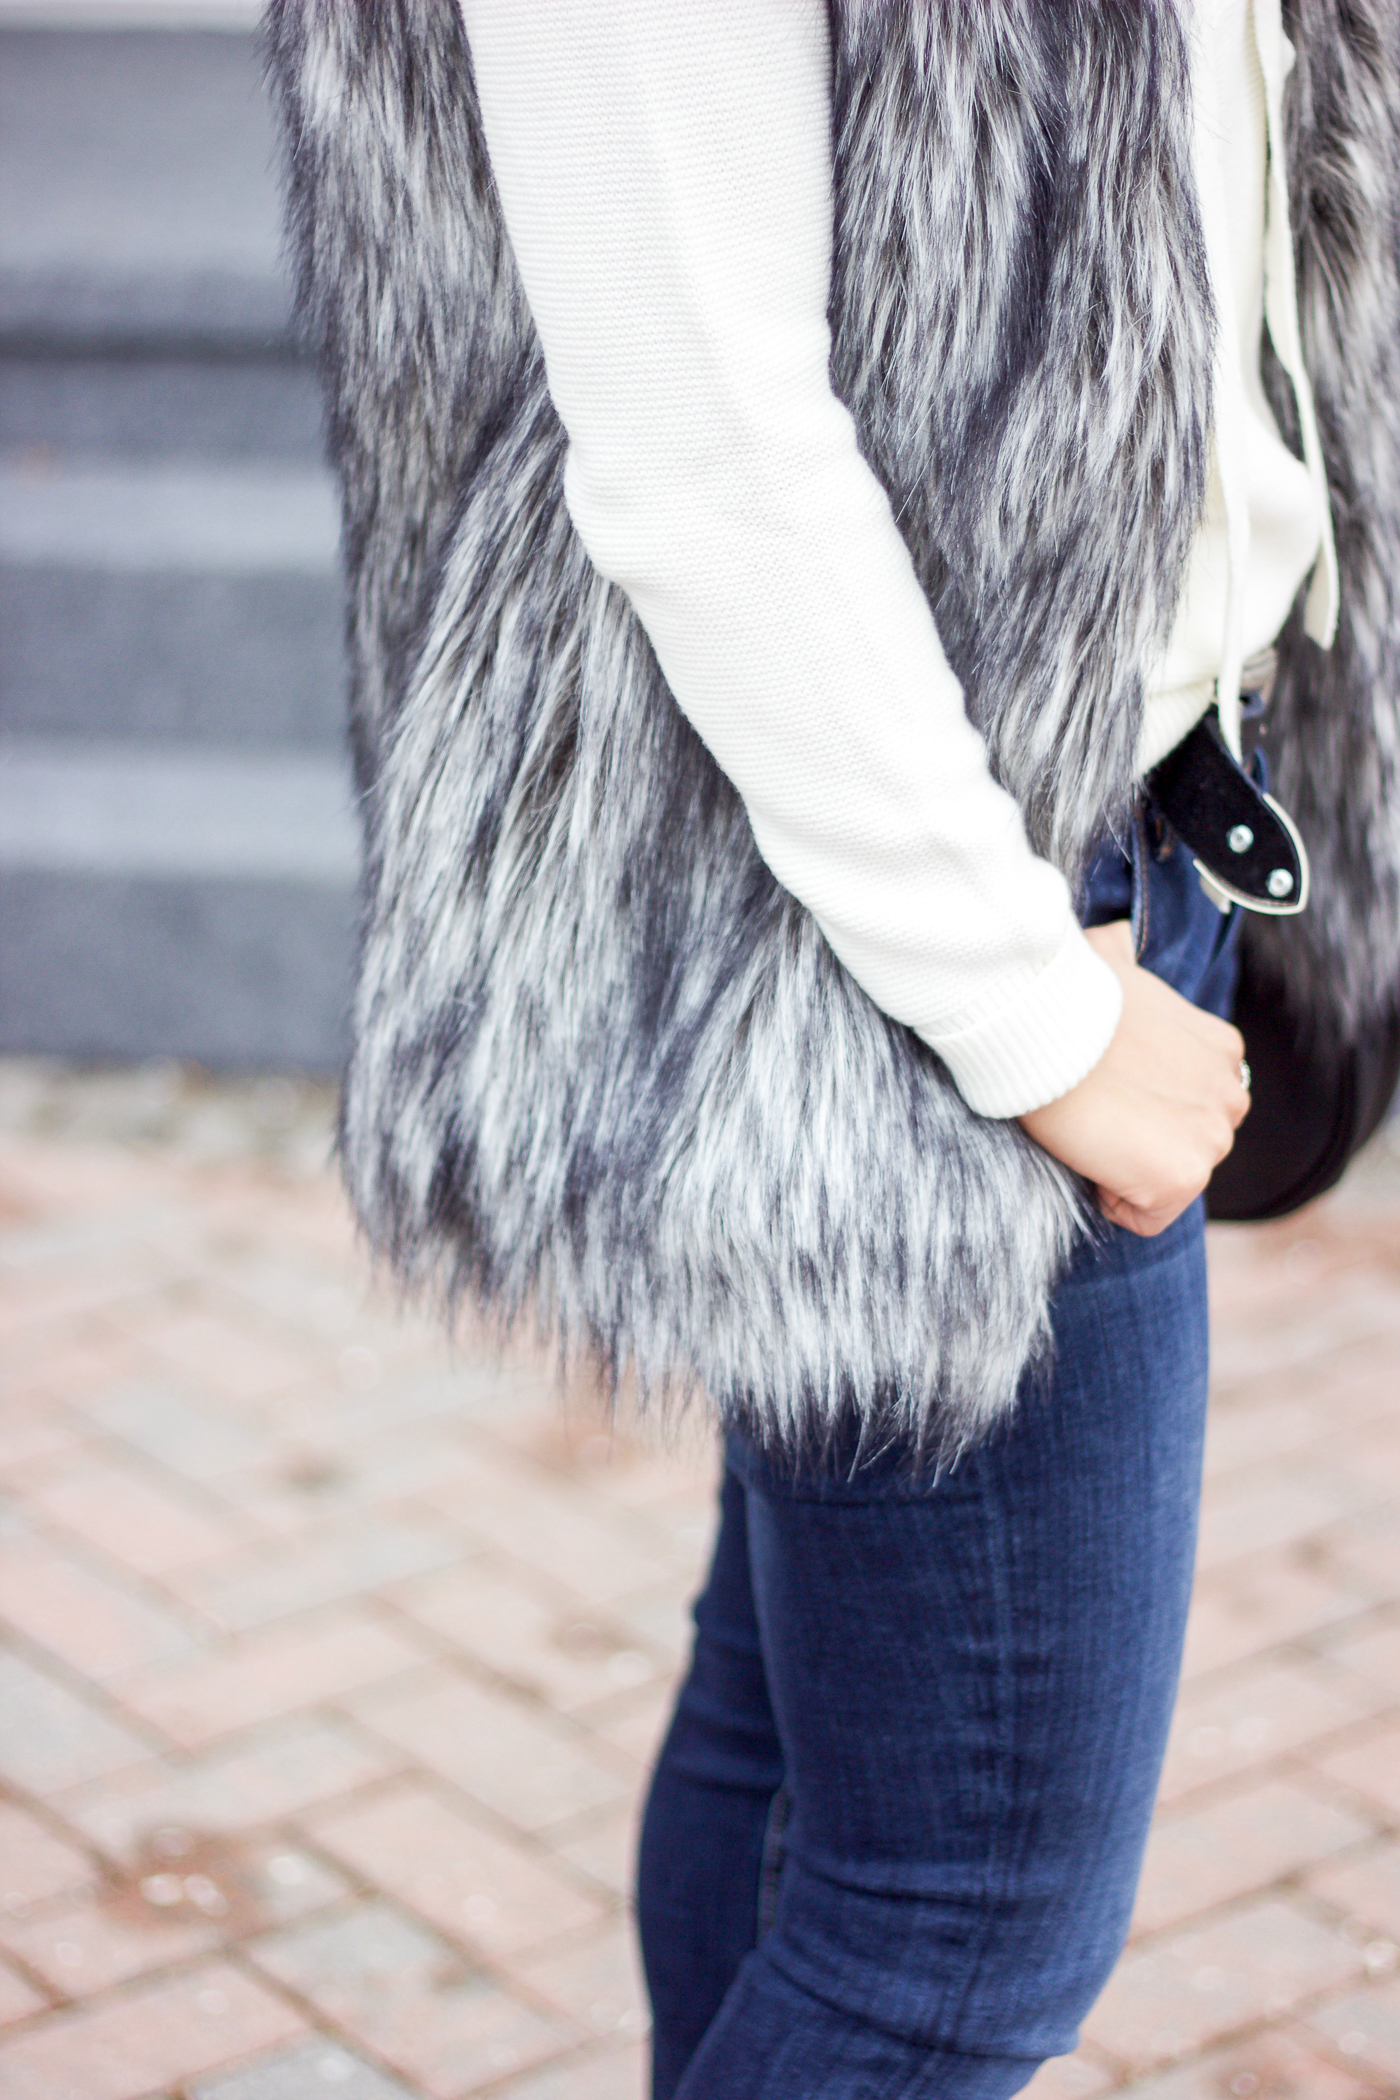 Simple winter outfit idea to wear a faux fur vest with jeans